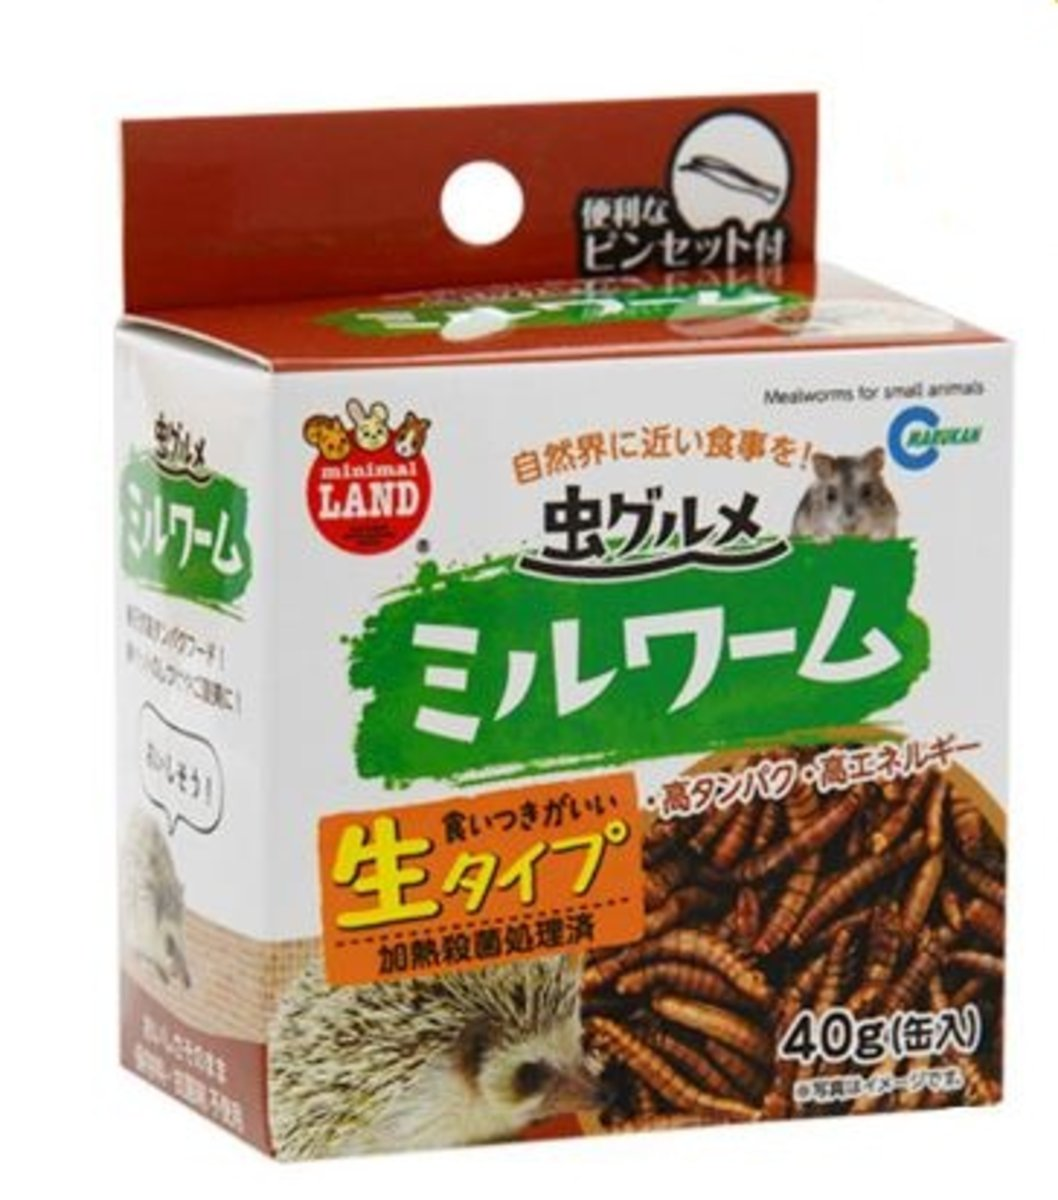 ML-163 Insect Speciality Mealworms 40g